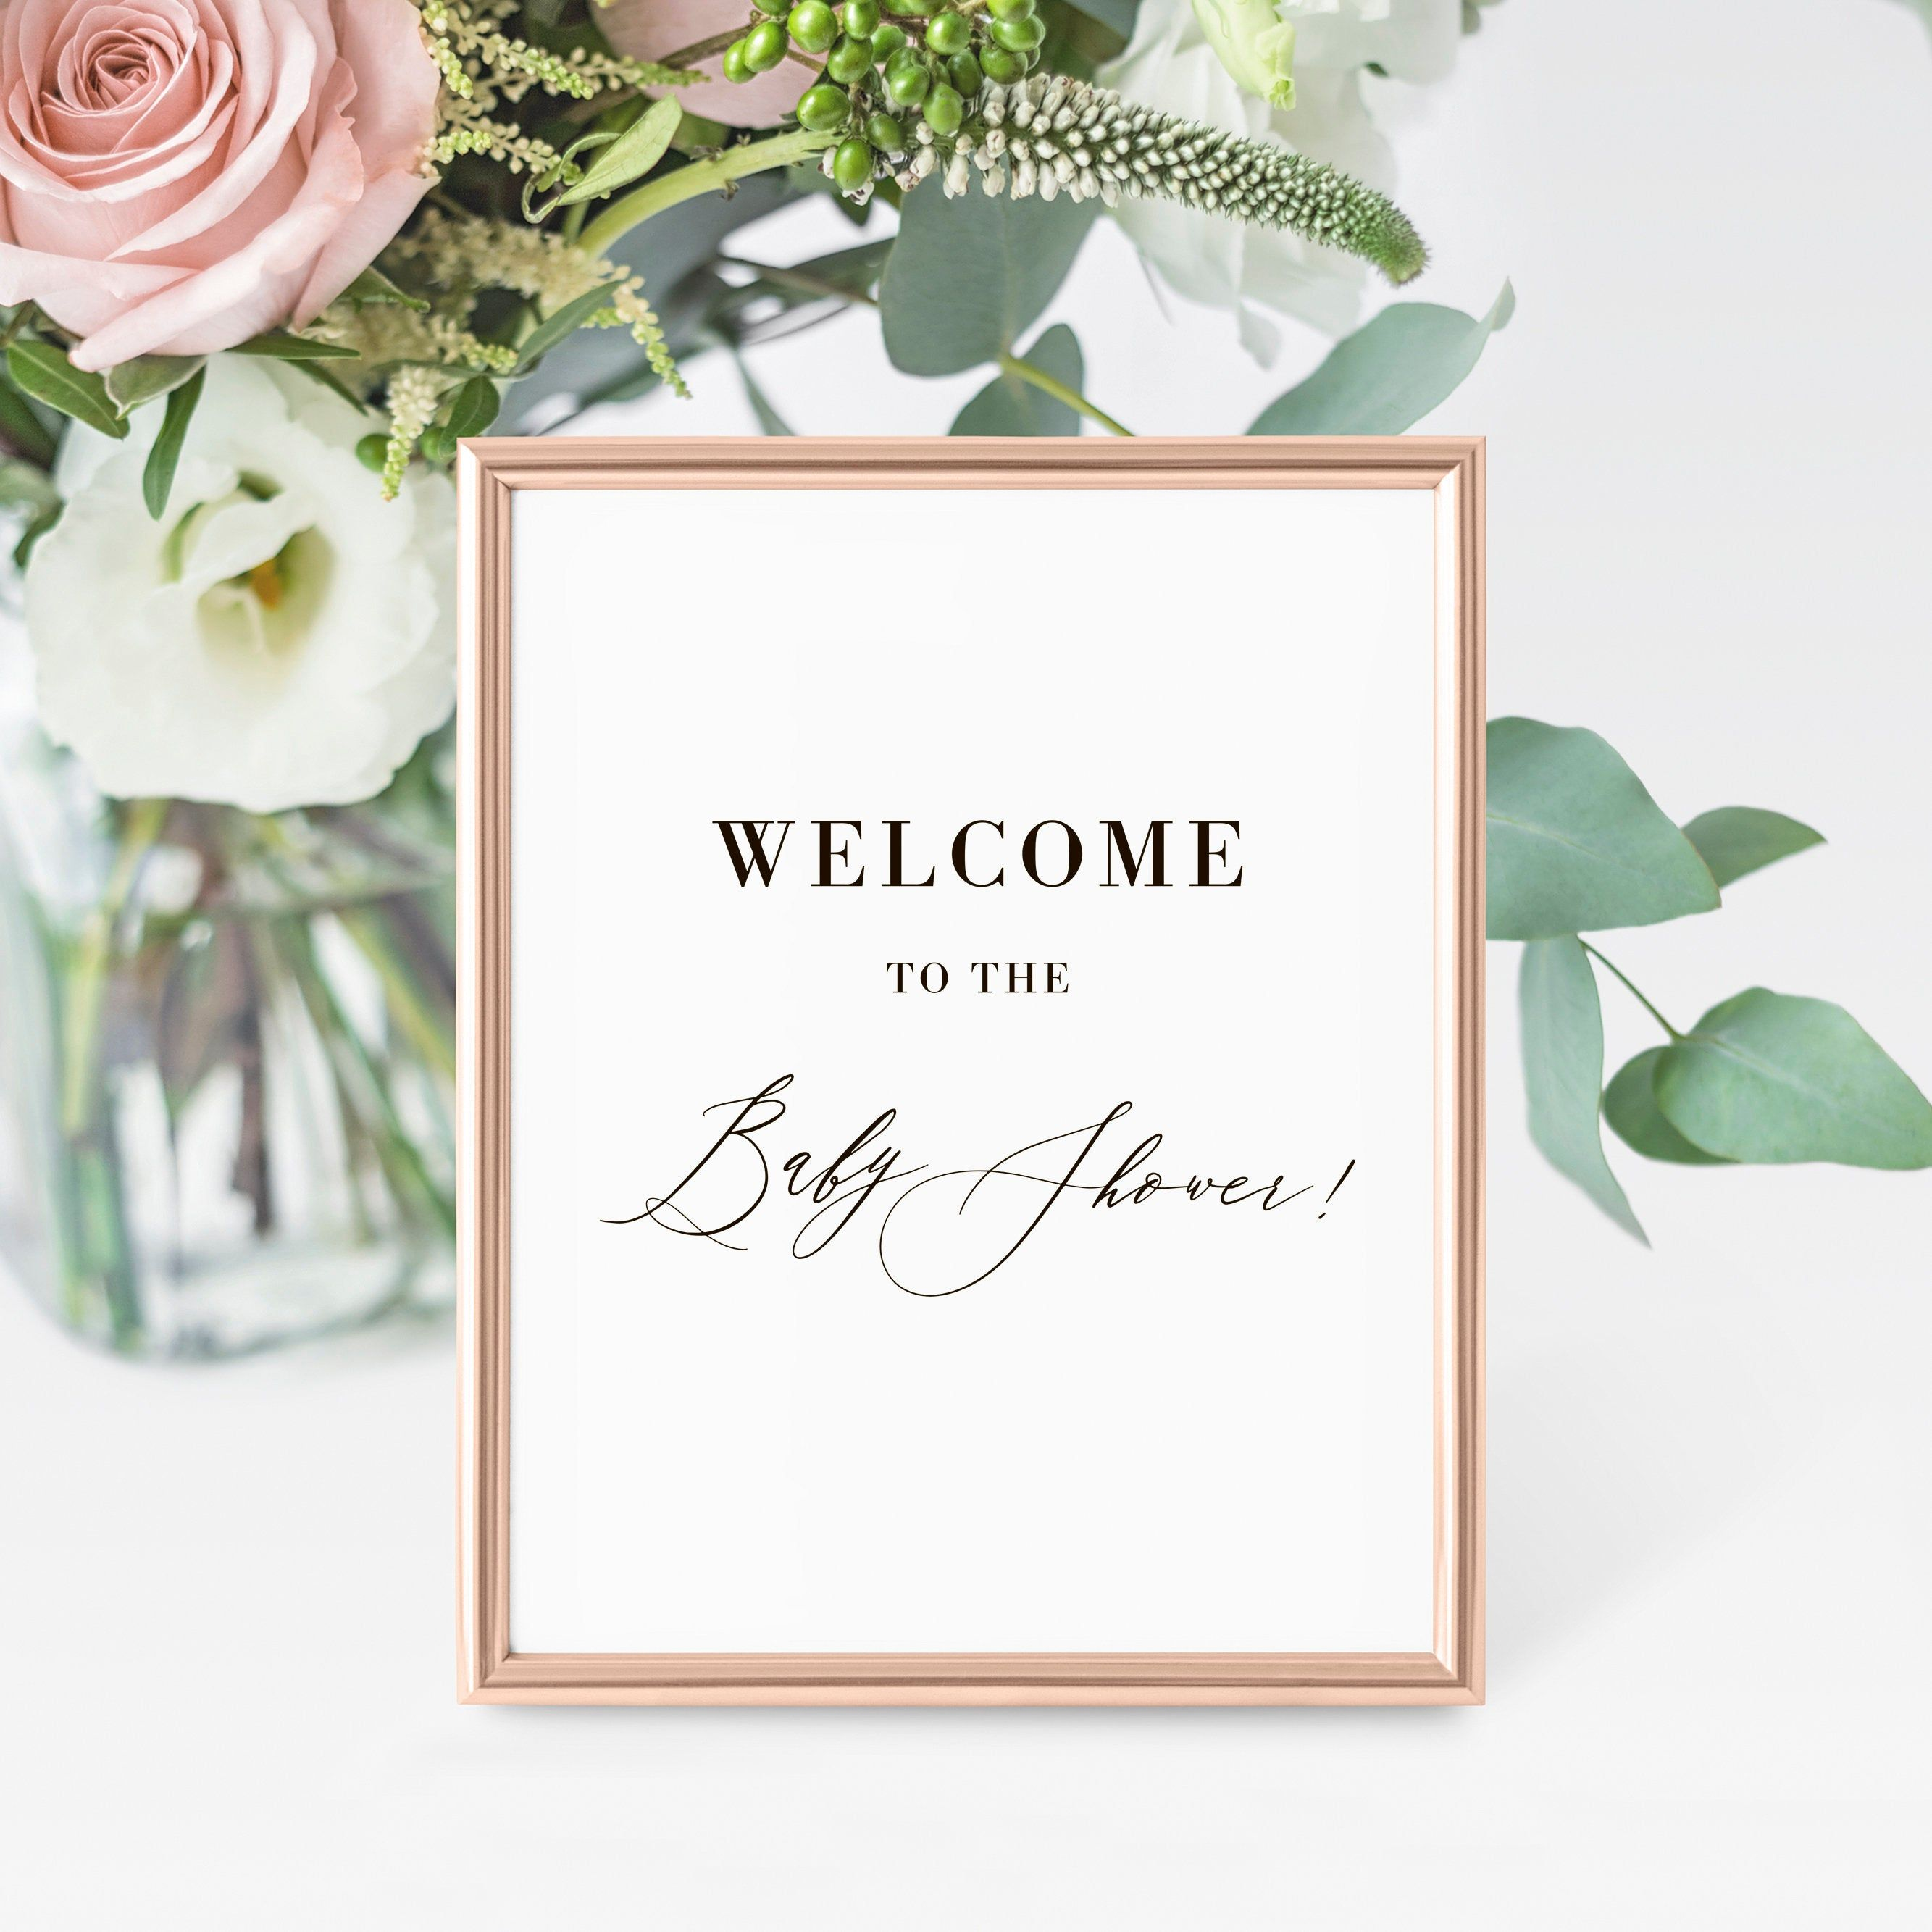 Editable pdf Entry Sign Welcome to the Baby Shower INSTANT DOWNLOAD Wedding Welcome Sign Baby Shower Welcome Sign Printable Meadow